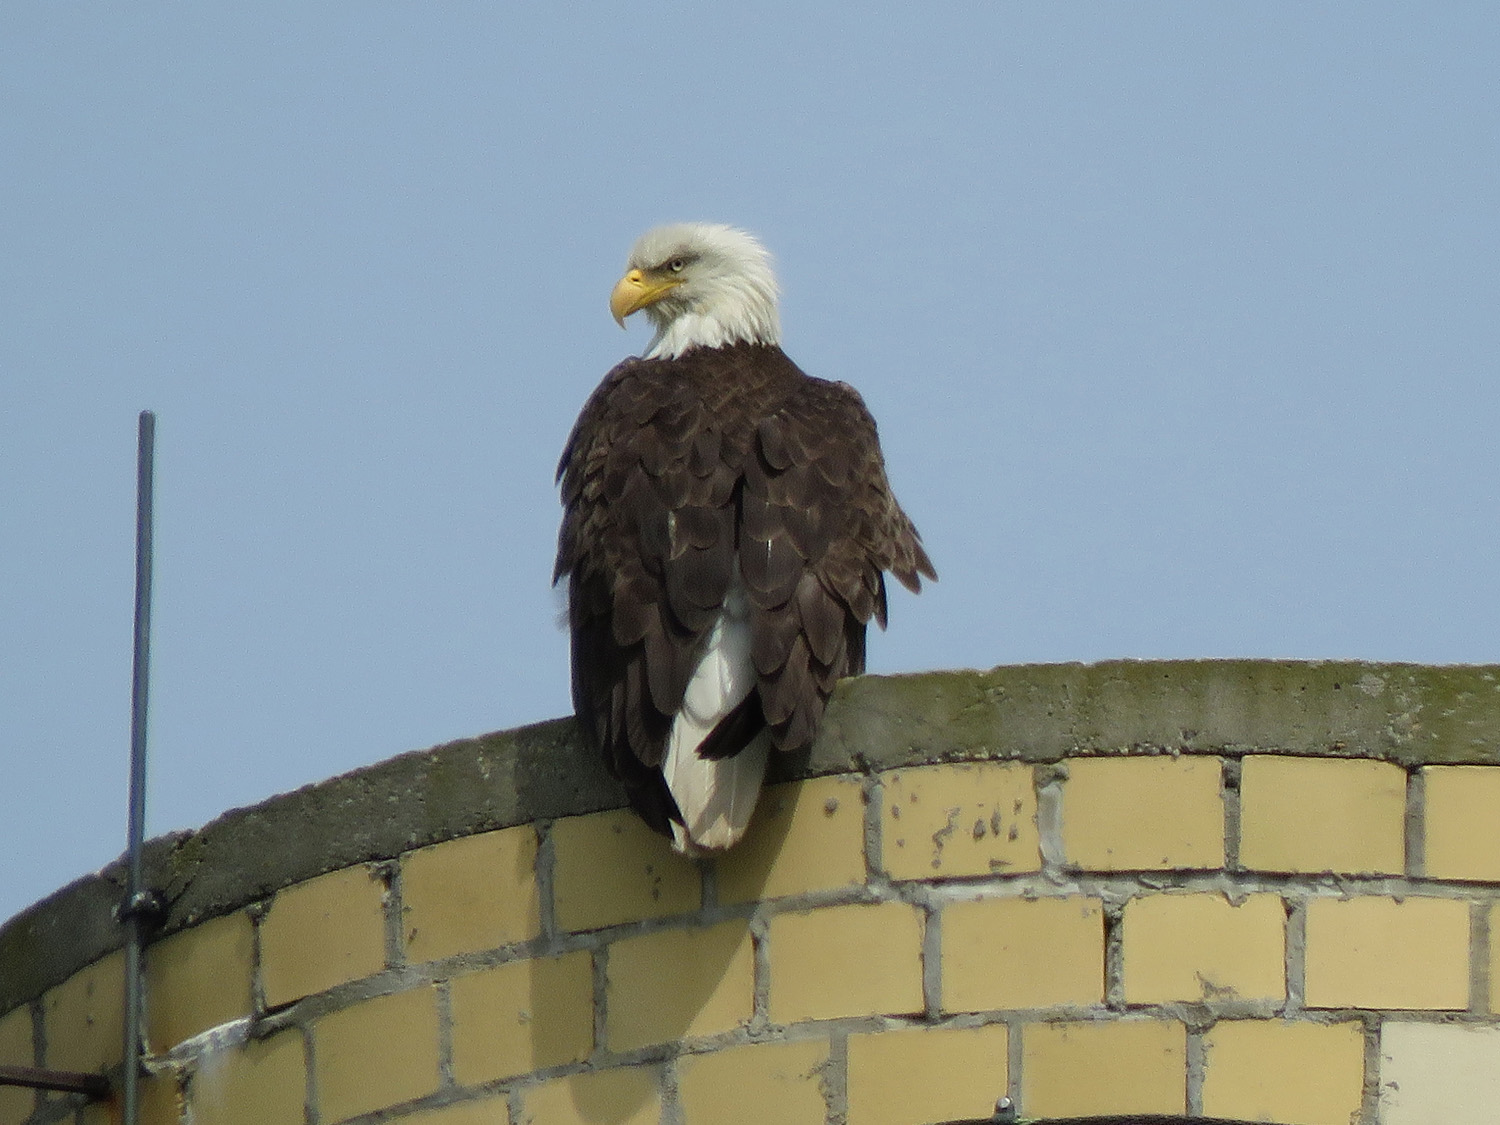 I love an eagle with attitude. Himself on the utility tower, Mt. Loretto Unique Area, Staten Island, May 22, 2019